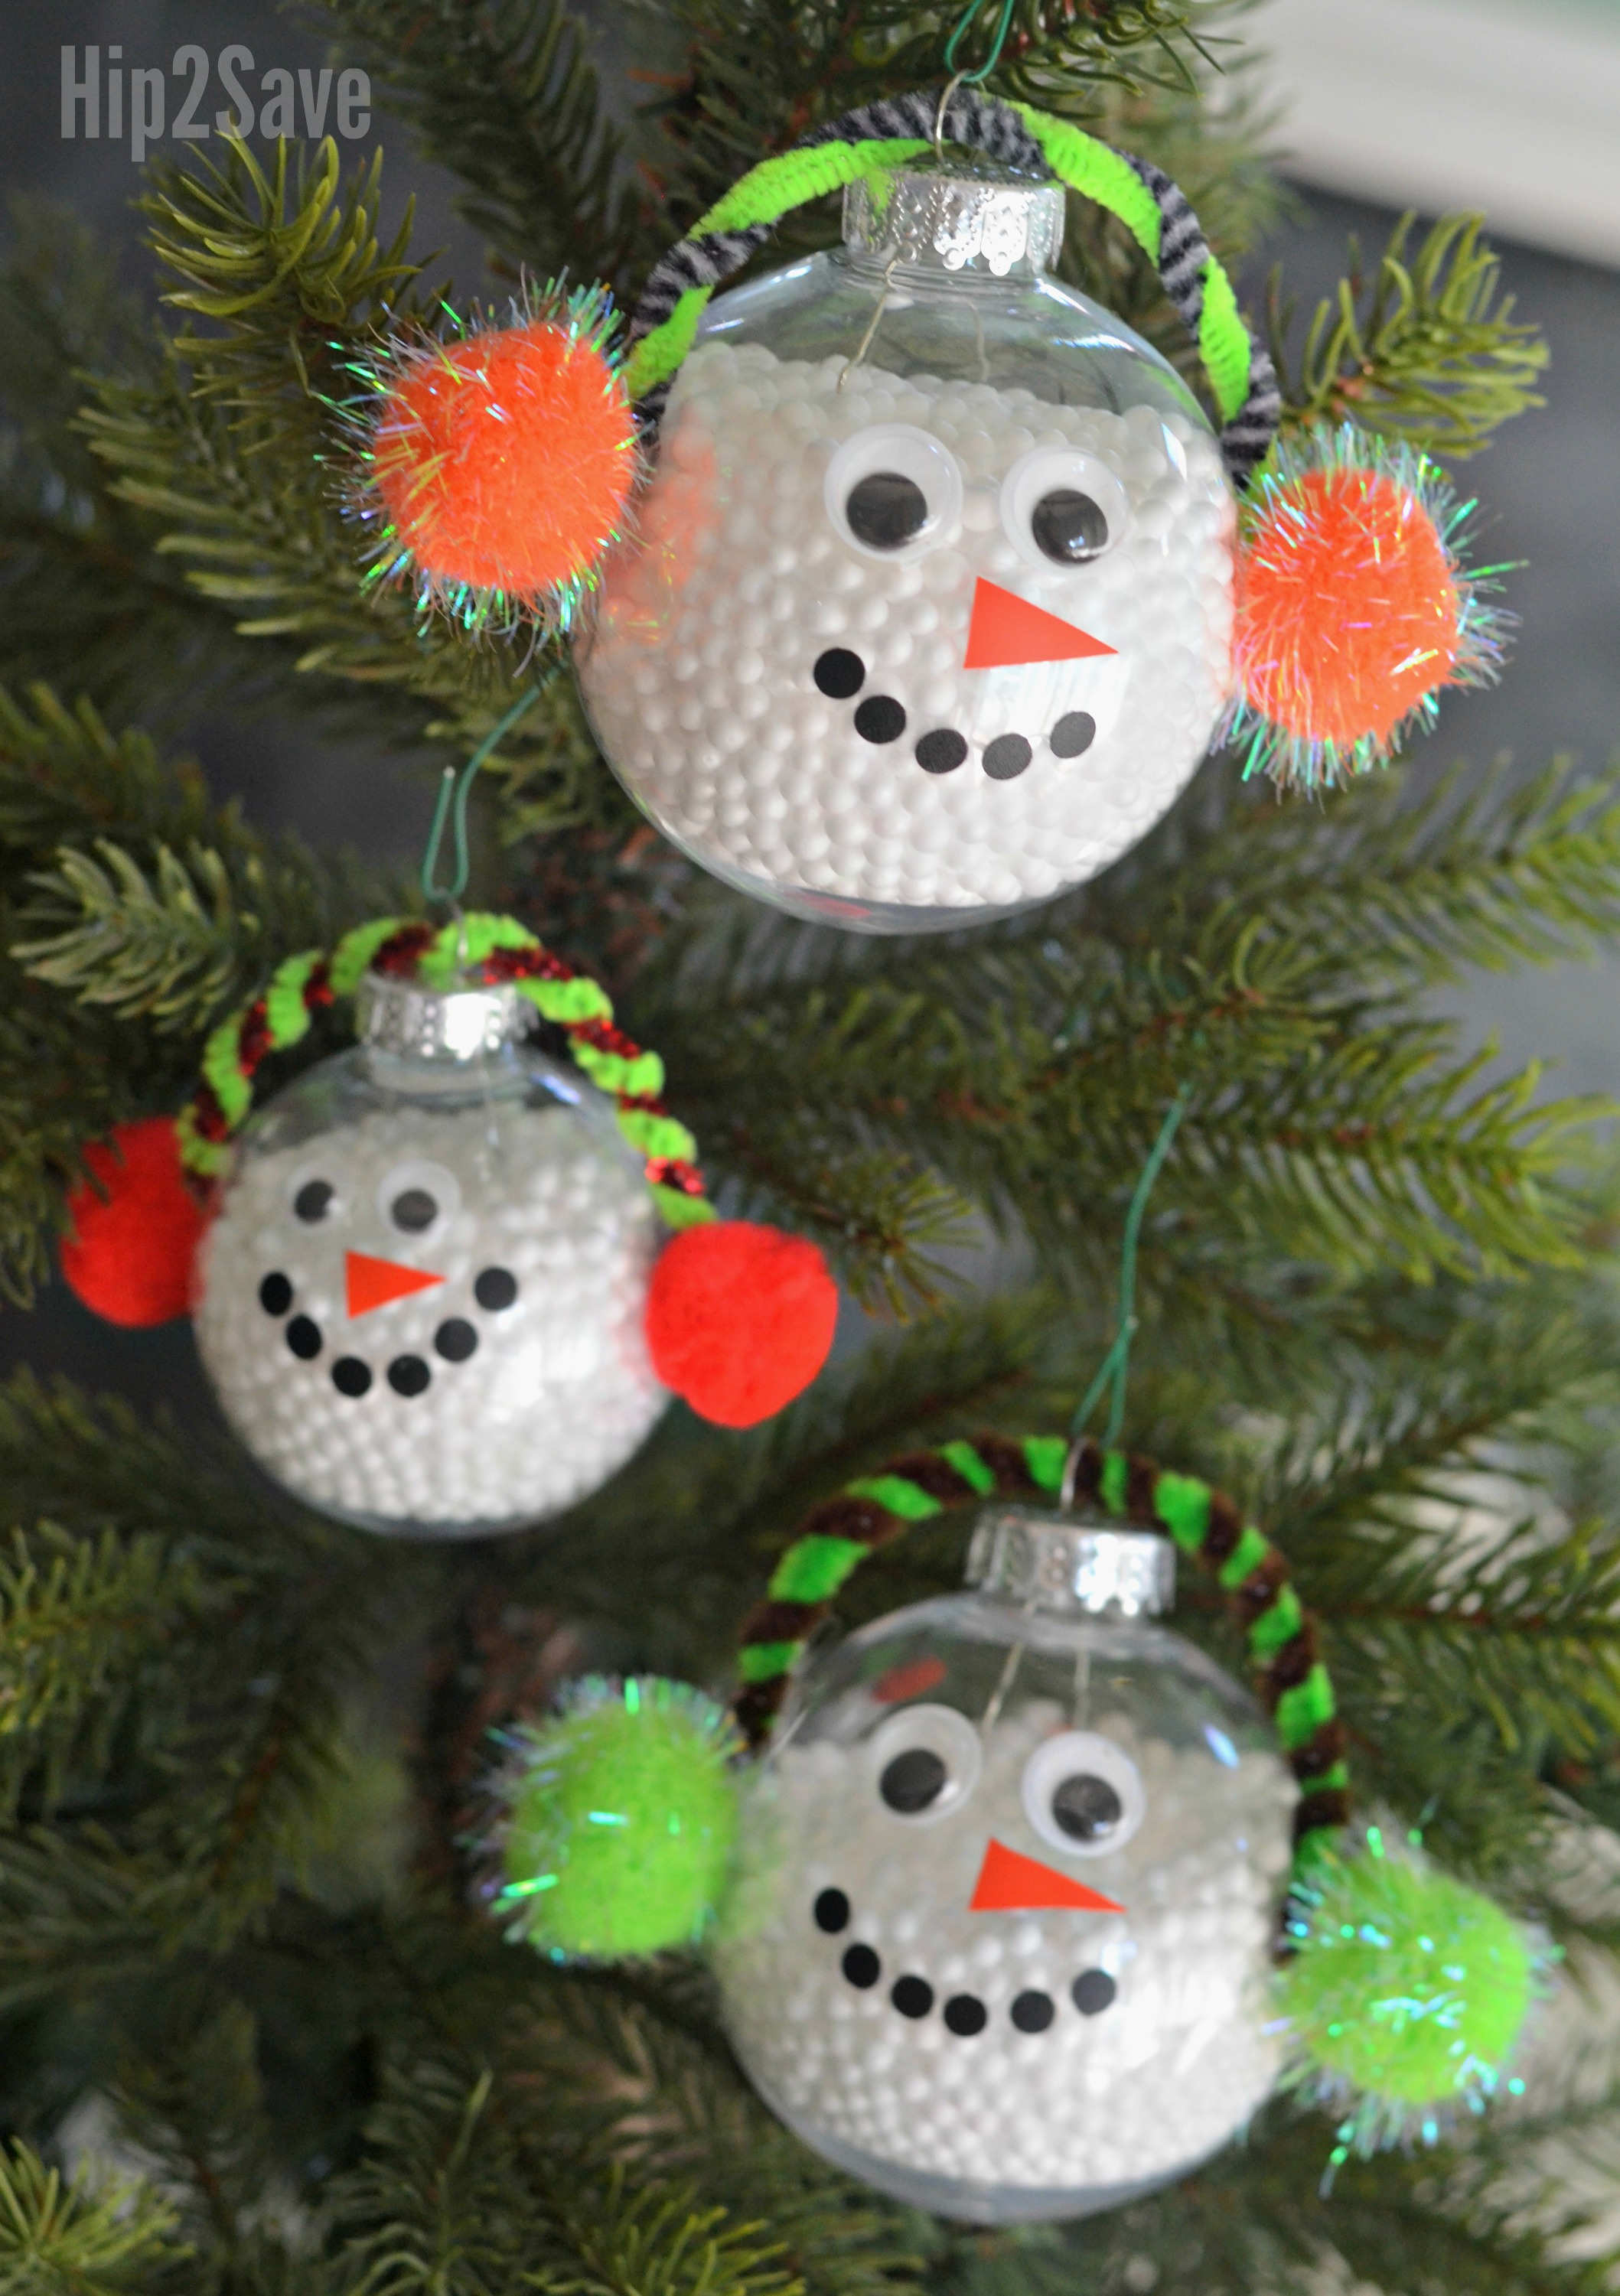 dollar-store-snowman-ornaments-hip2save-com